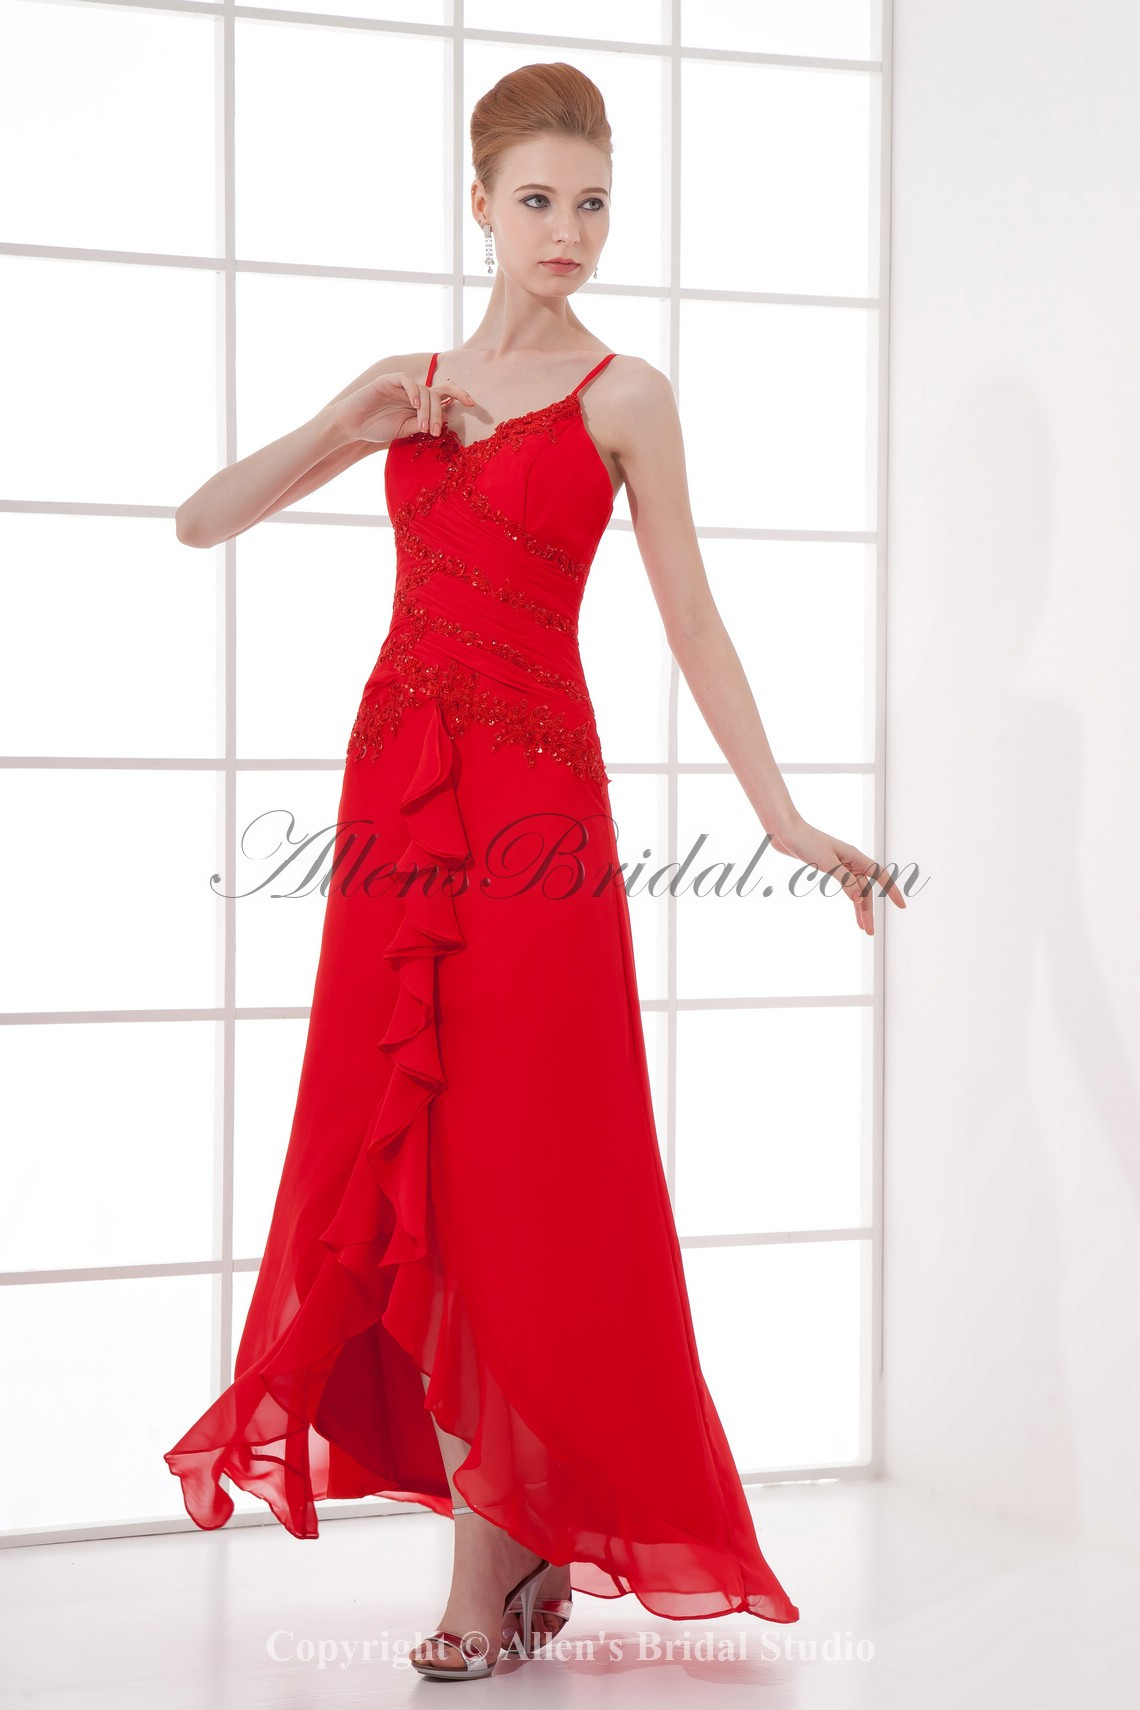 /101-801/chiffon-spaghetti-neckline-a-line-asymmetrical-embroidered-prom-dress.jpg